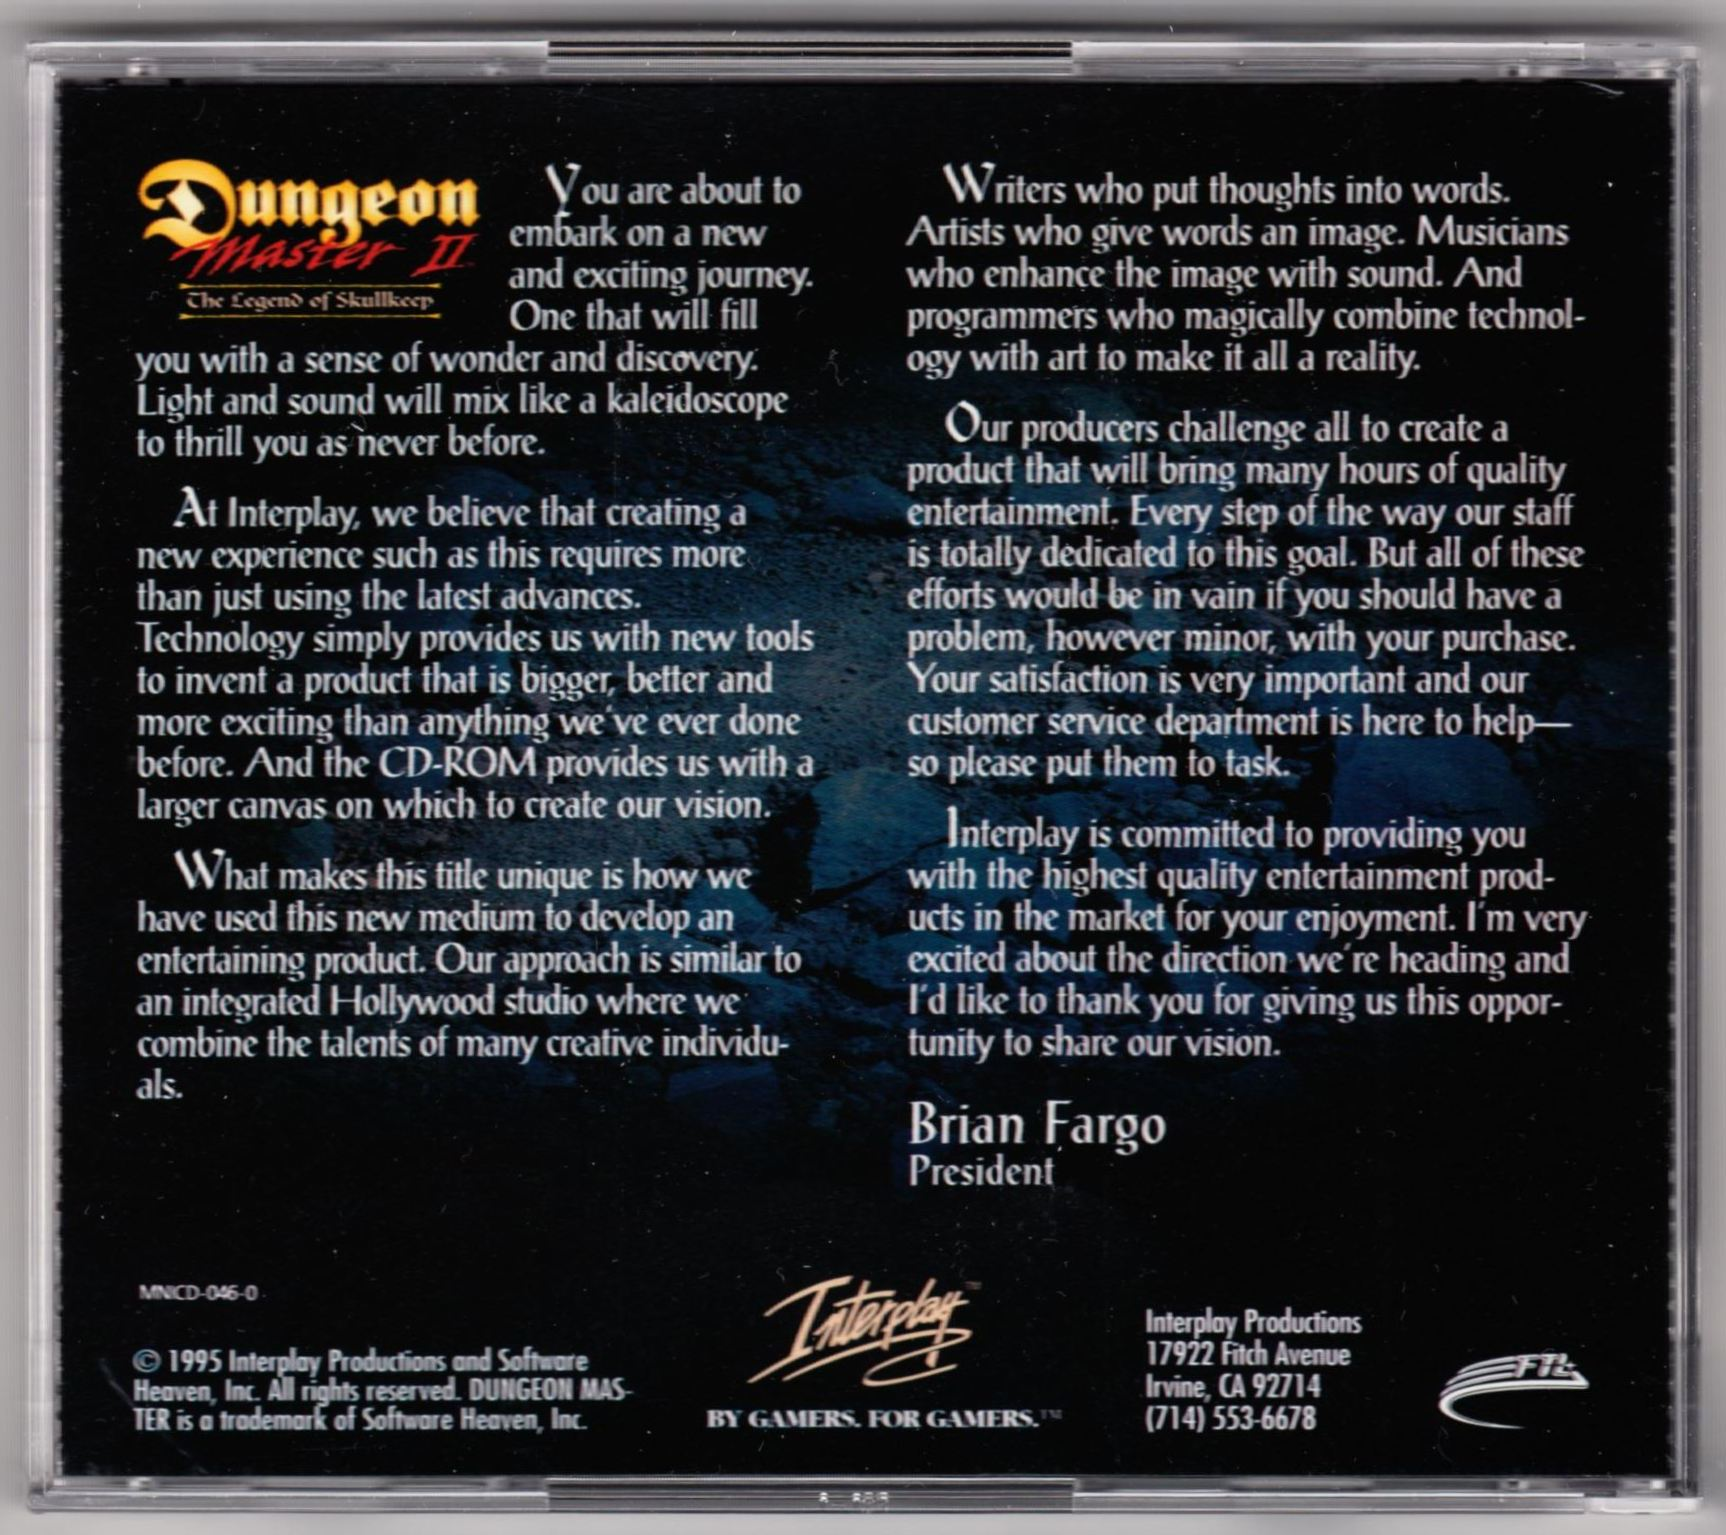 Game - Dungeon Master II - US - PC - Big Box - Compact Disc Box - Back - Scan